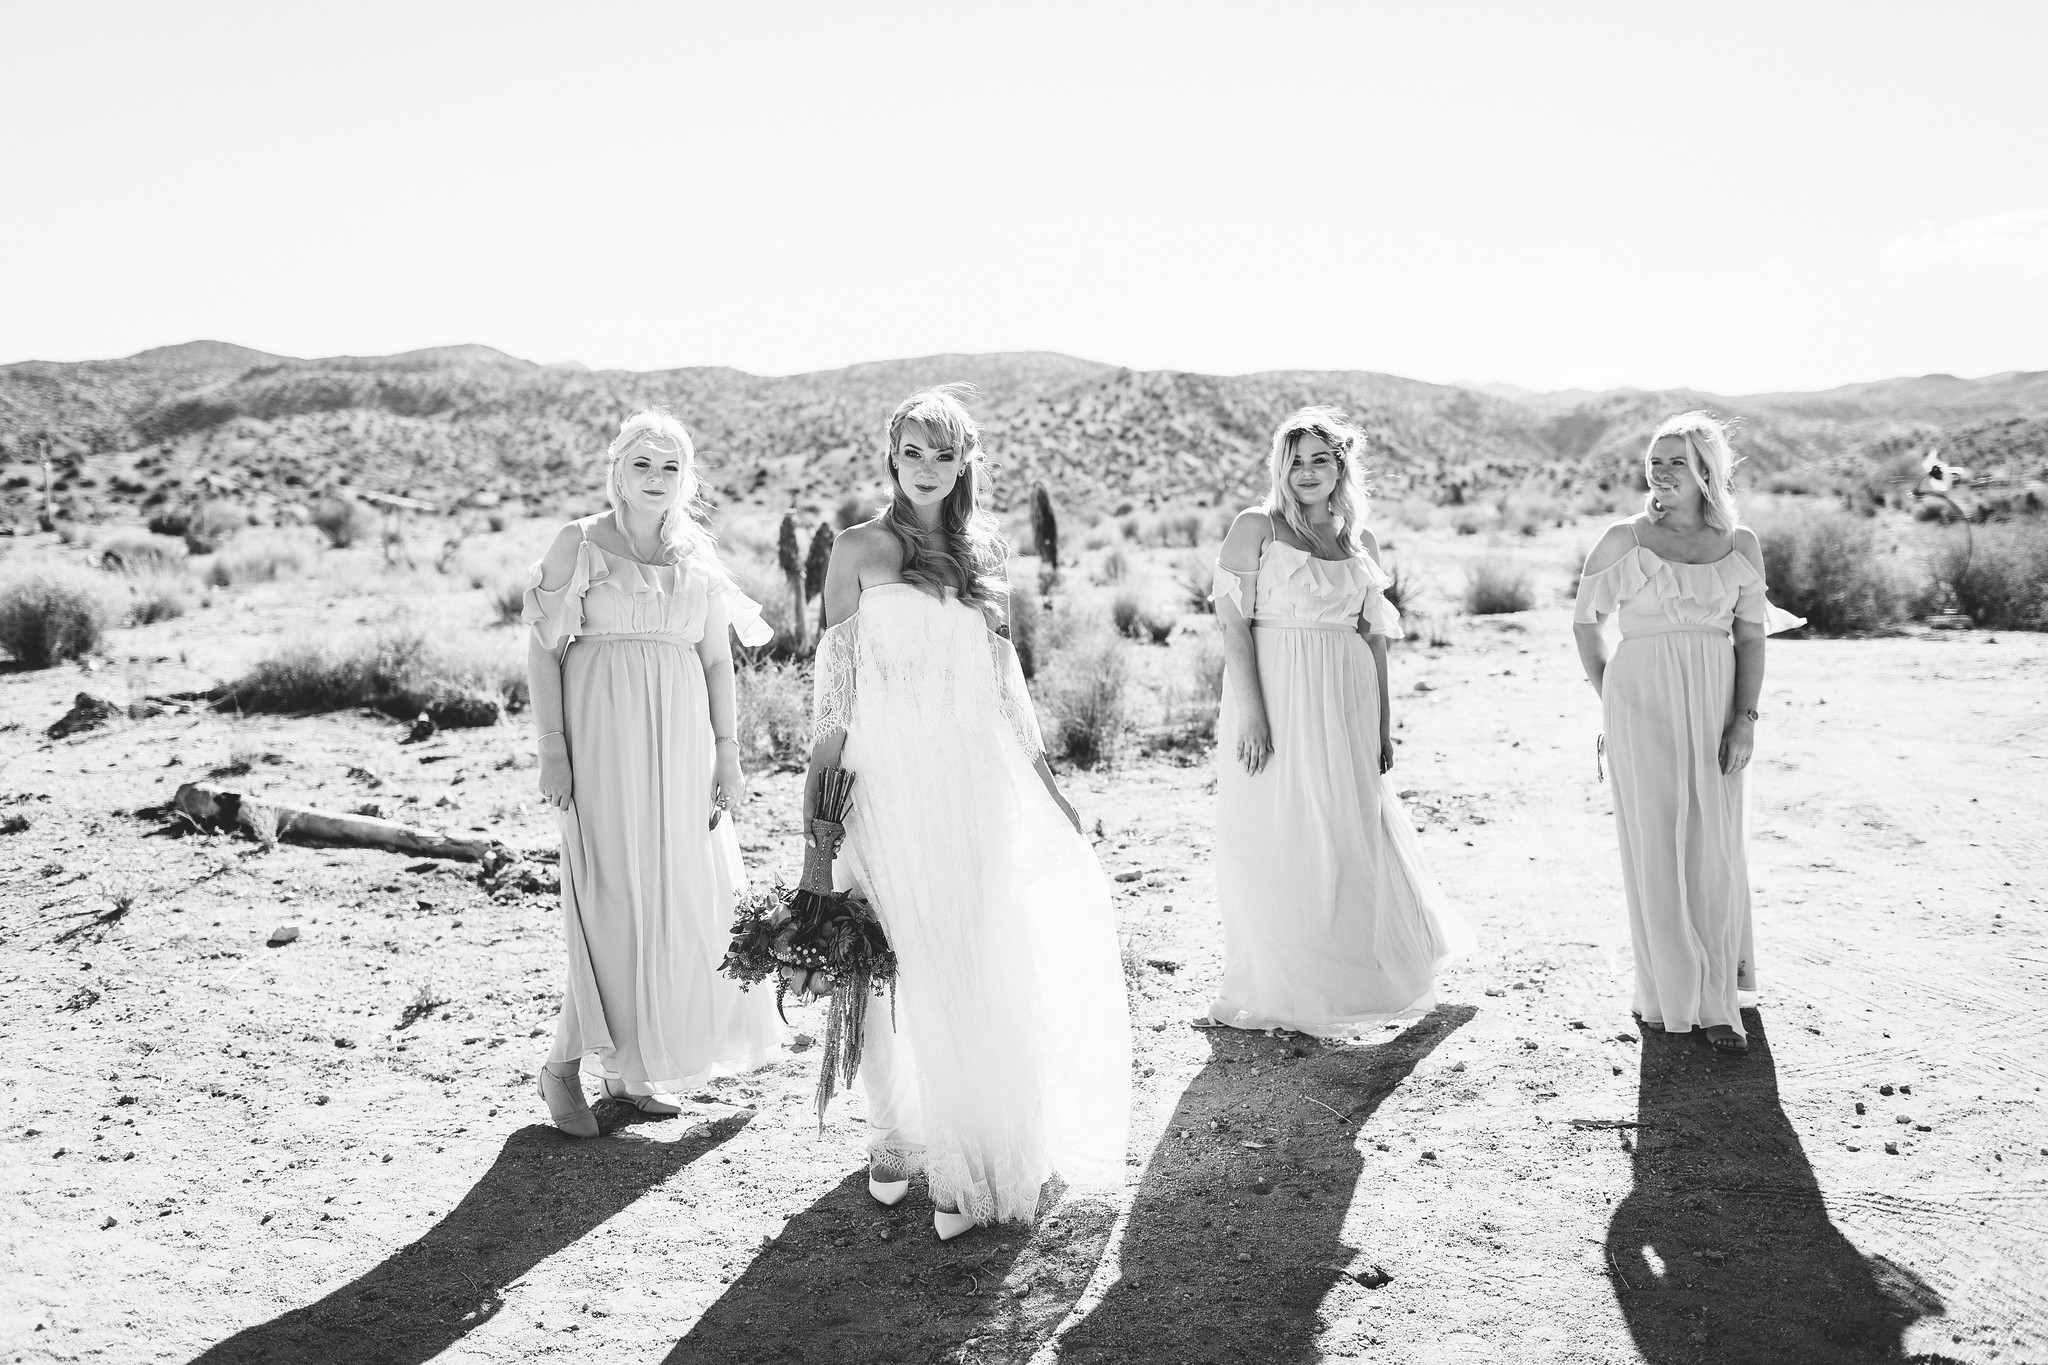 zoe-london-wedding-joshua-tree-5.jpg